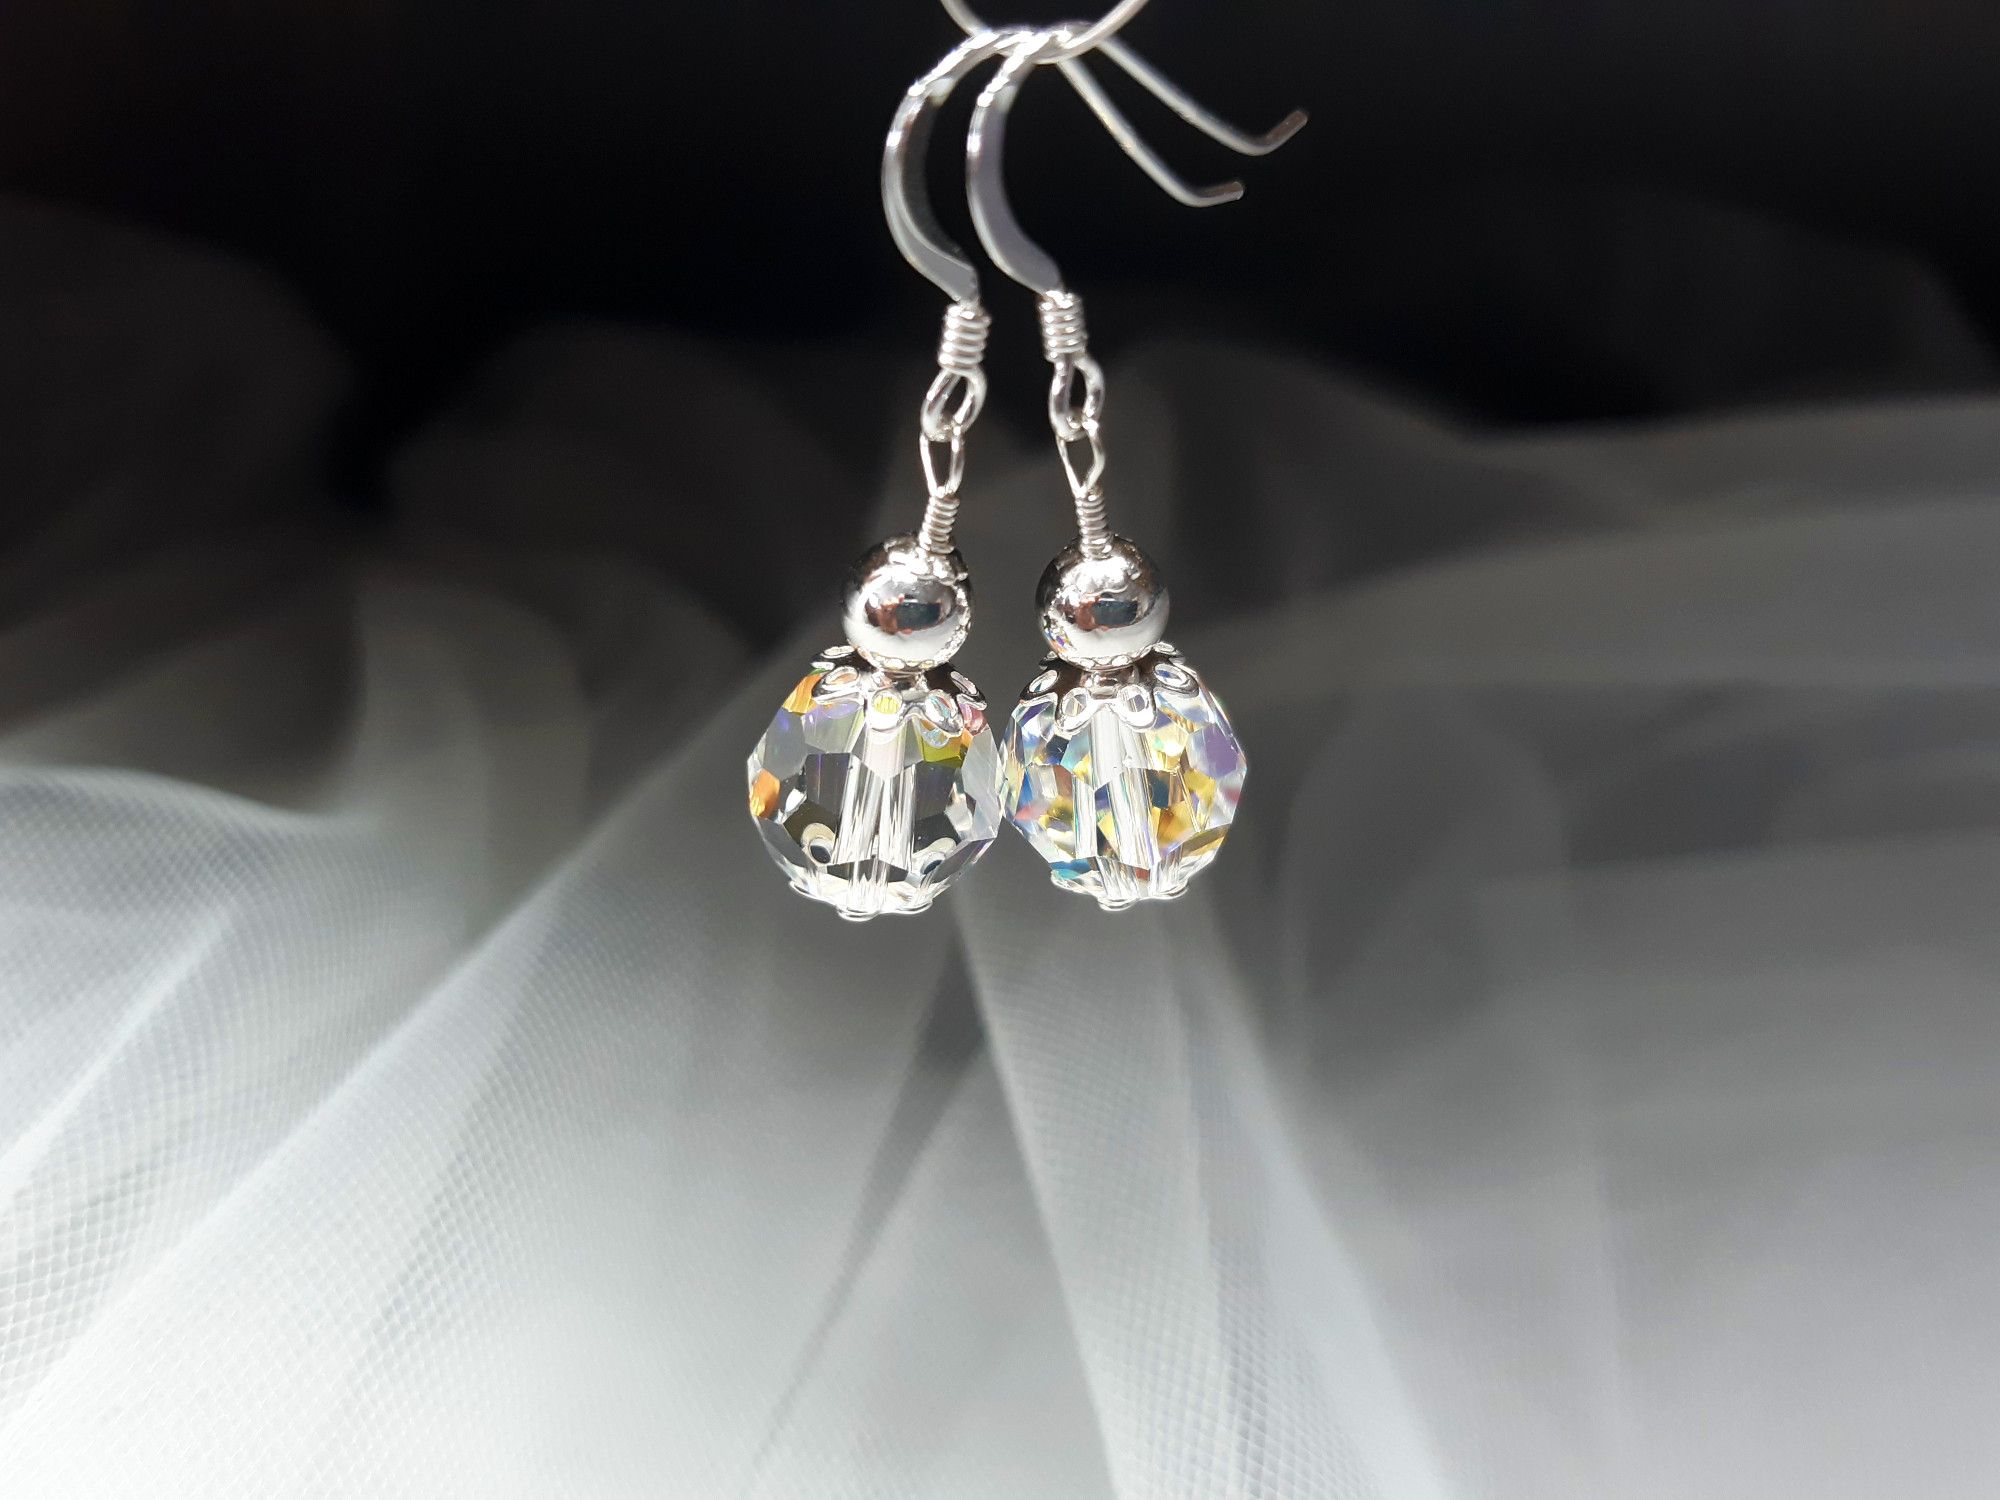 Occasion-bridal-earrings with swarovski crystal+sterling silver-17.jpg